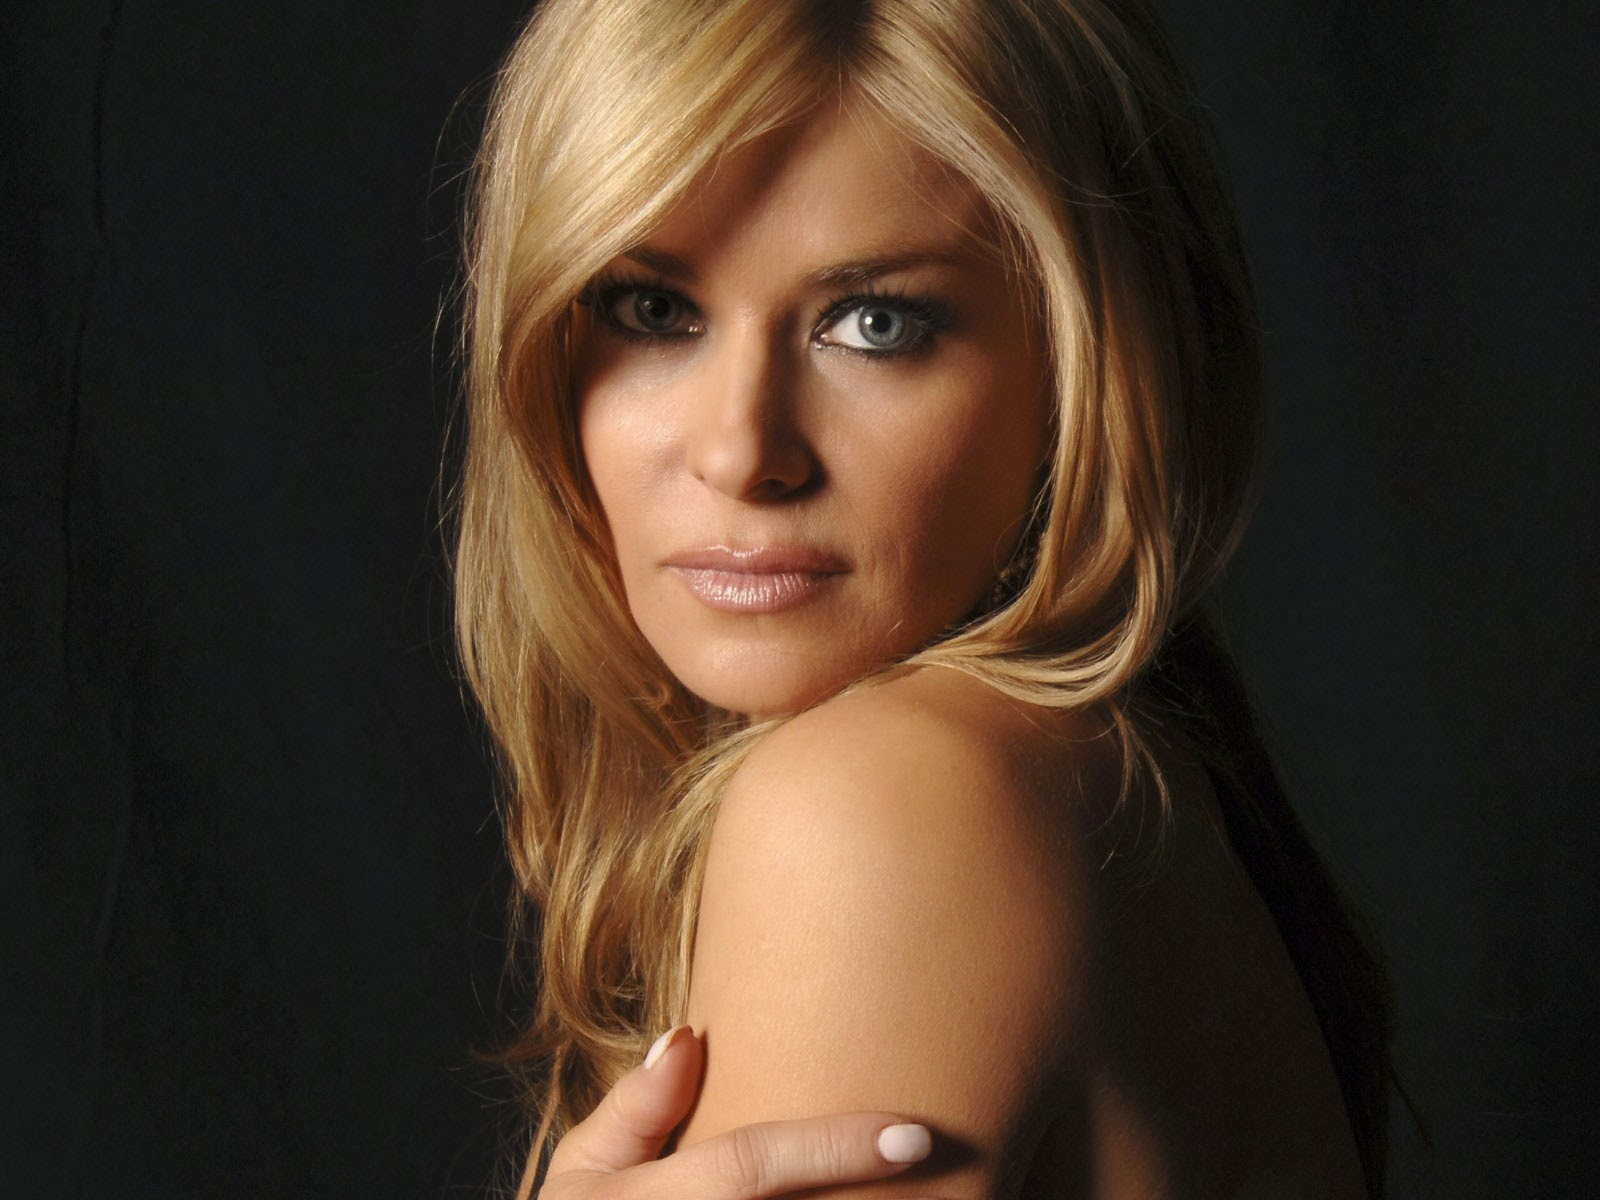 Carmen Electra hot lips | HIGH RESOLUTION PICTURES